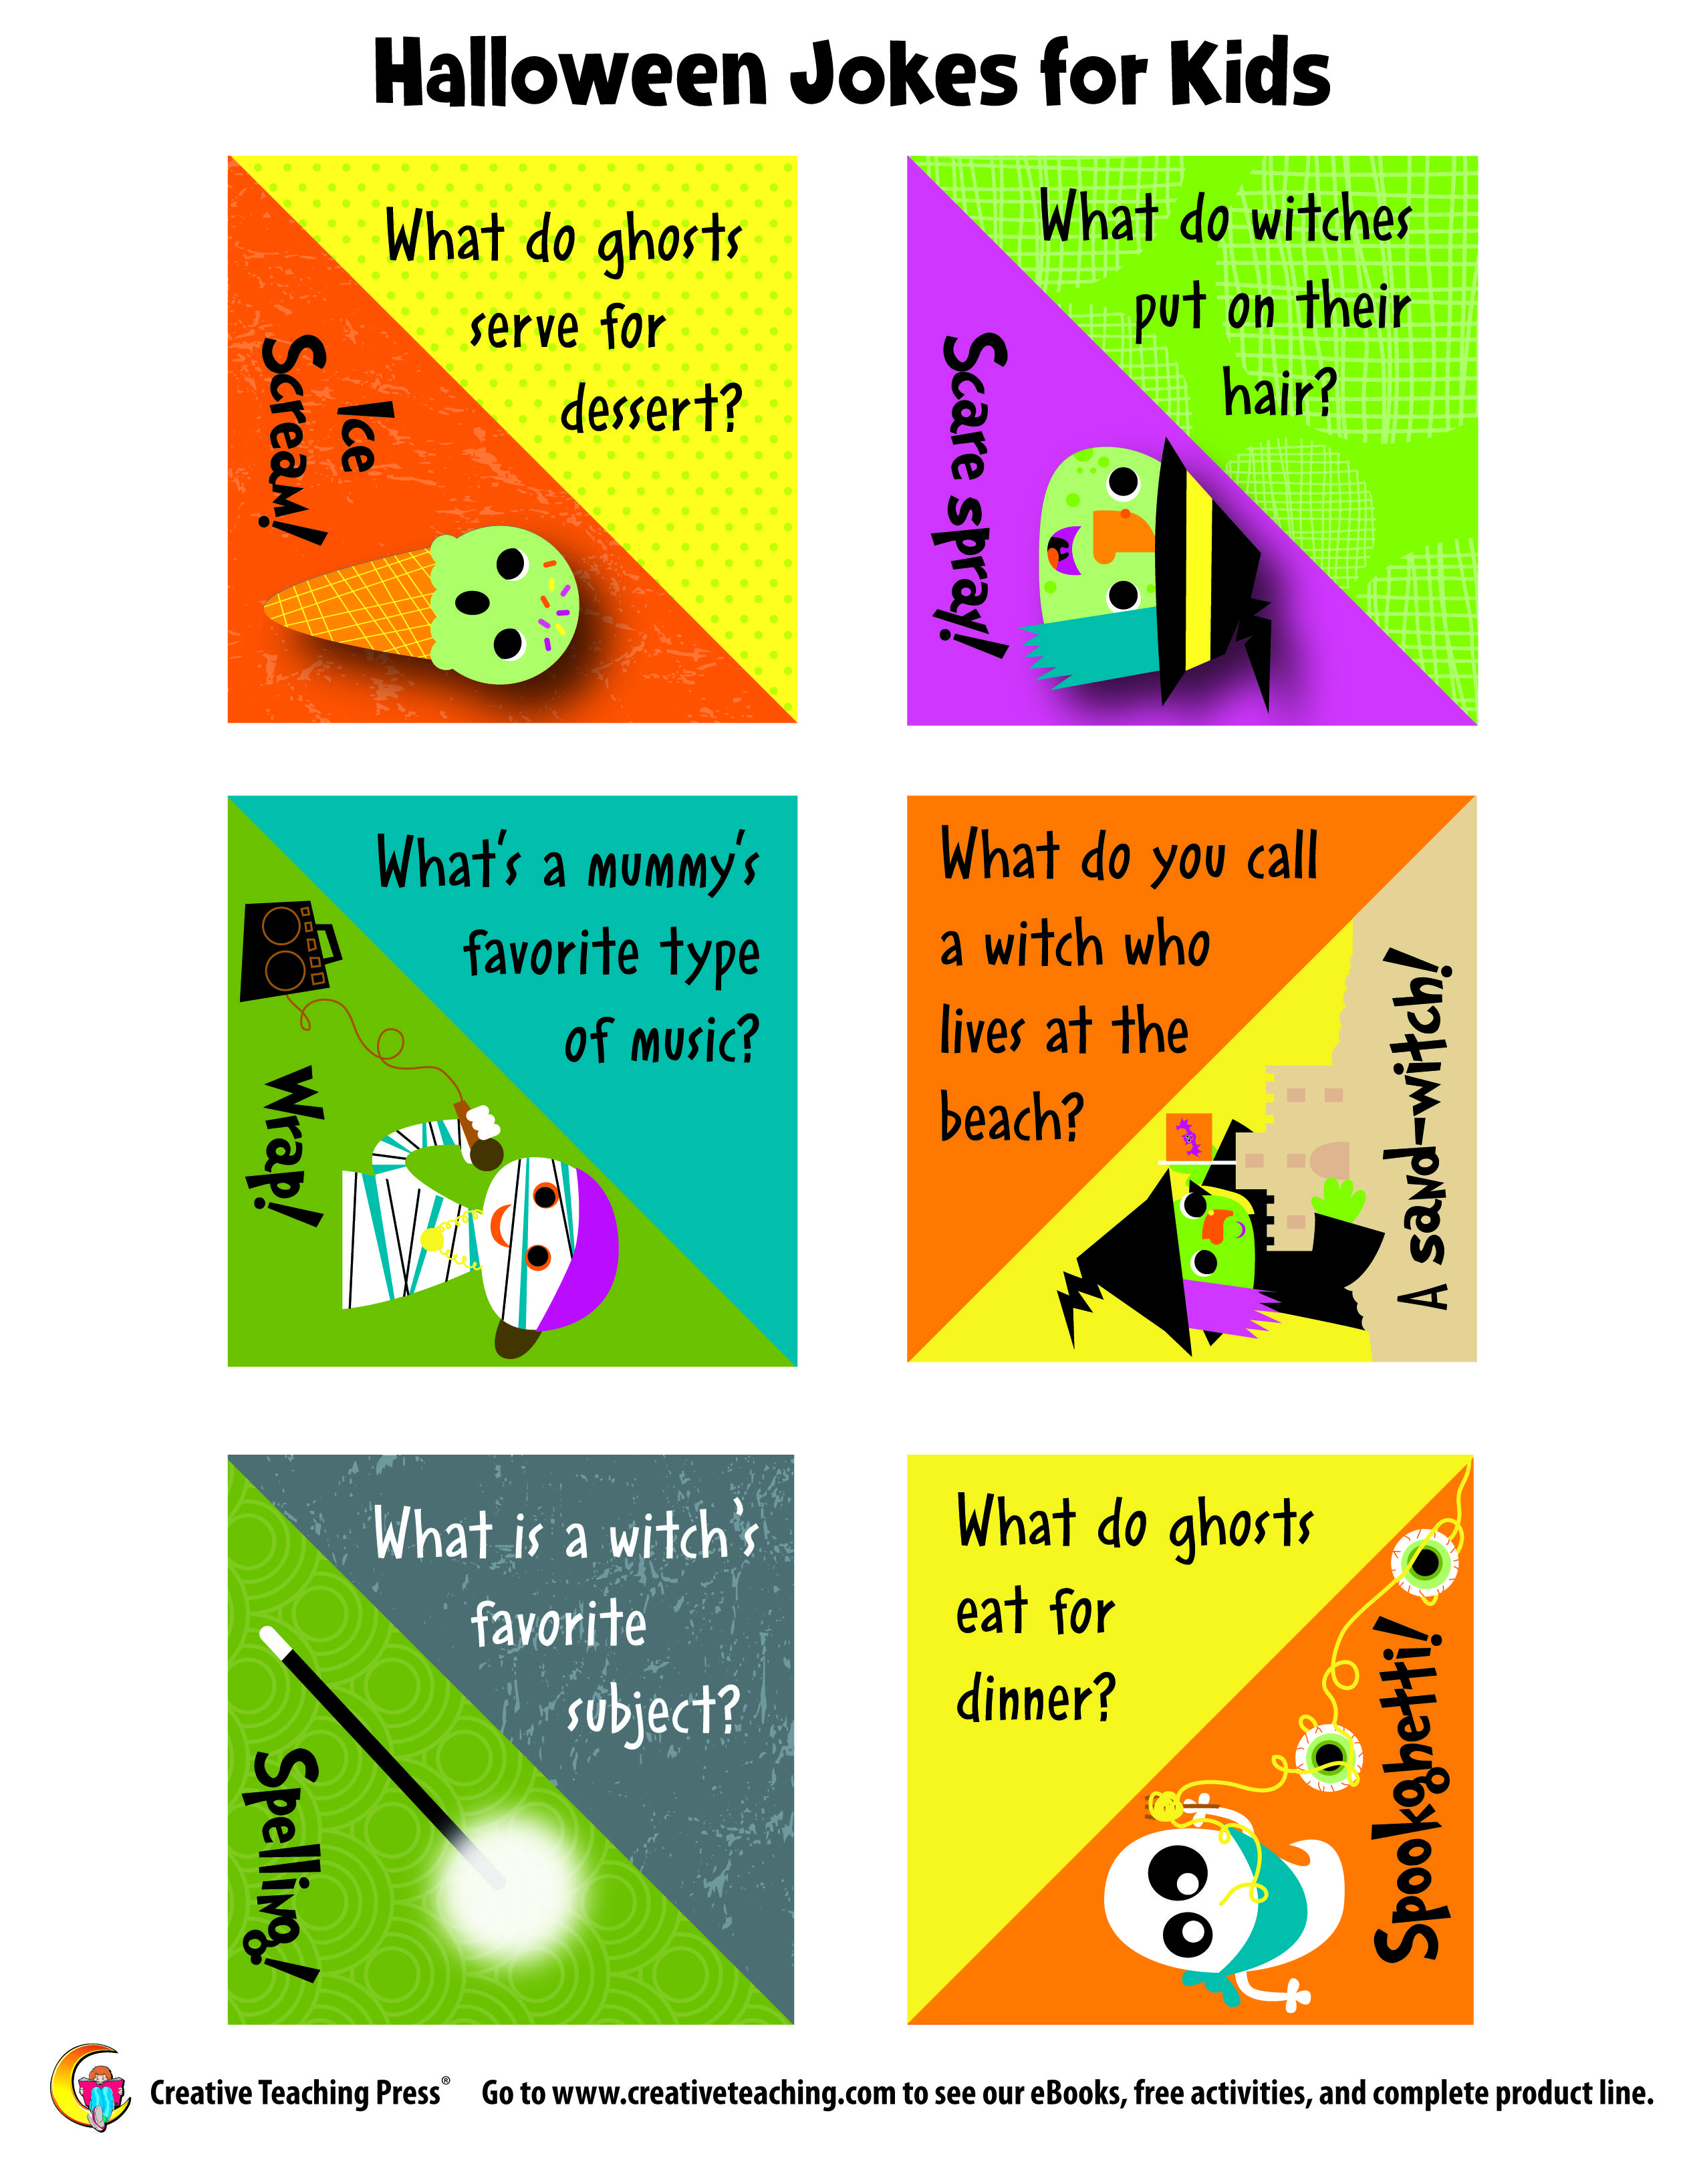 Silly Halloween jokes for kids from Creative Teaching Press ...